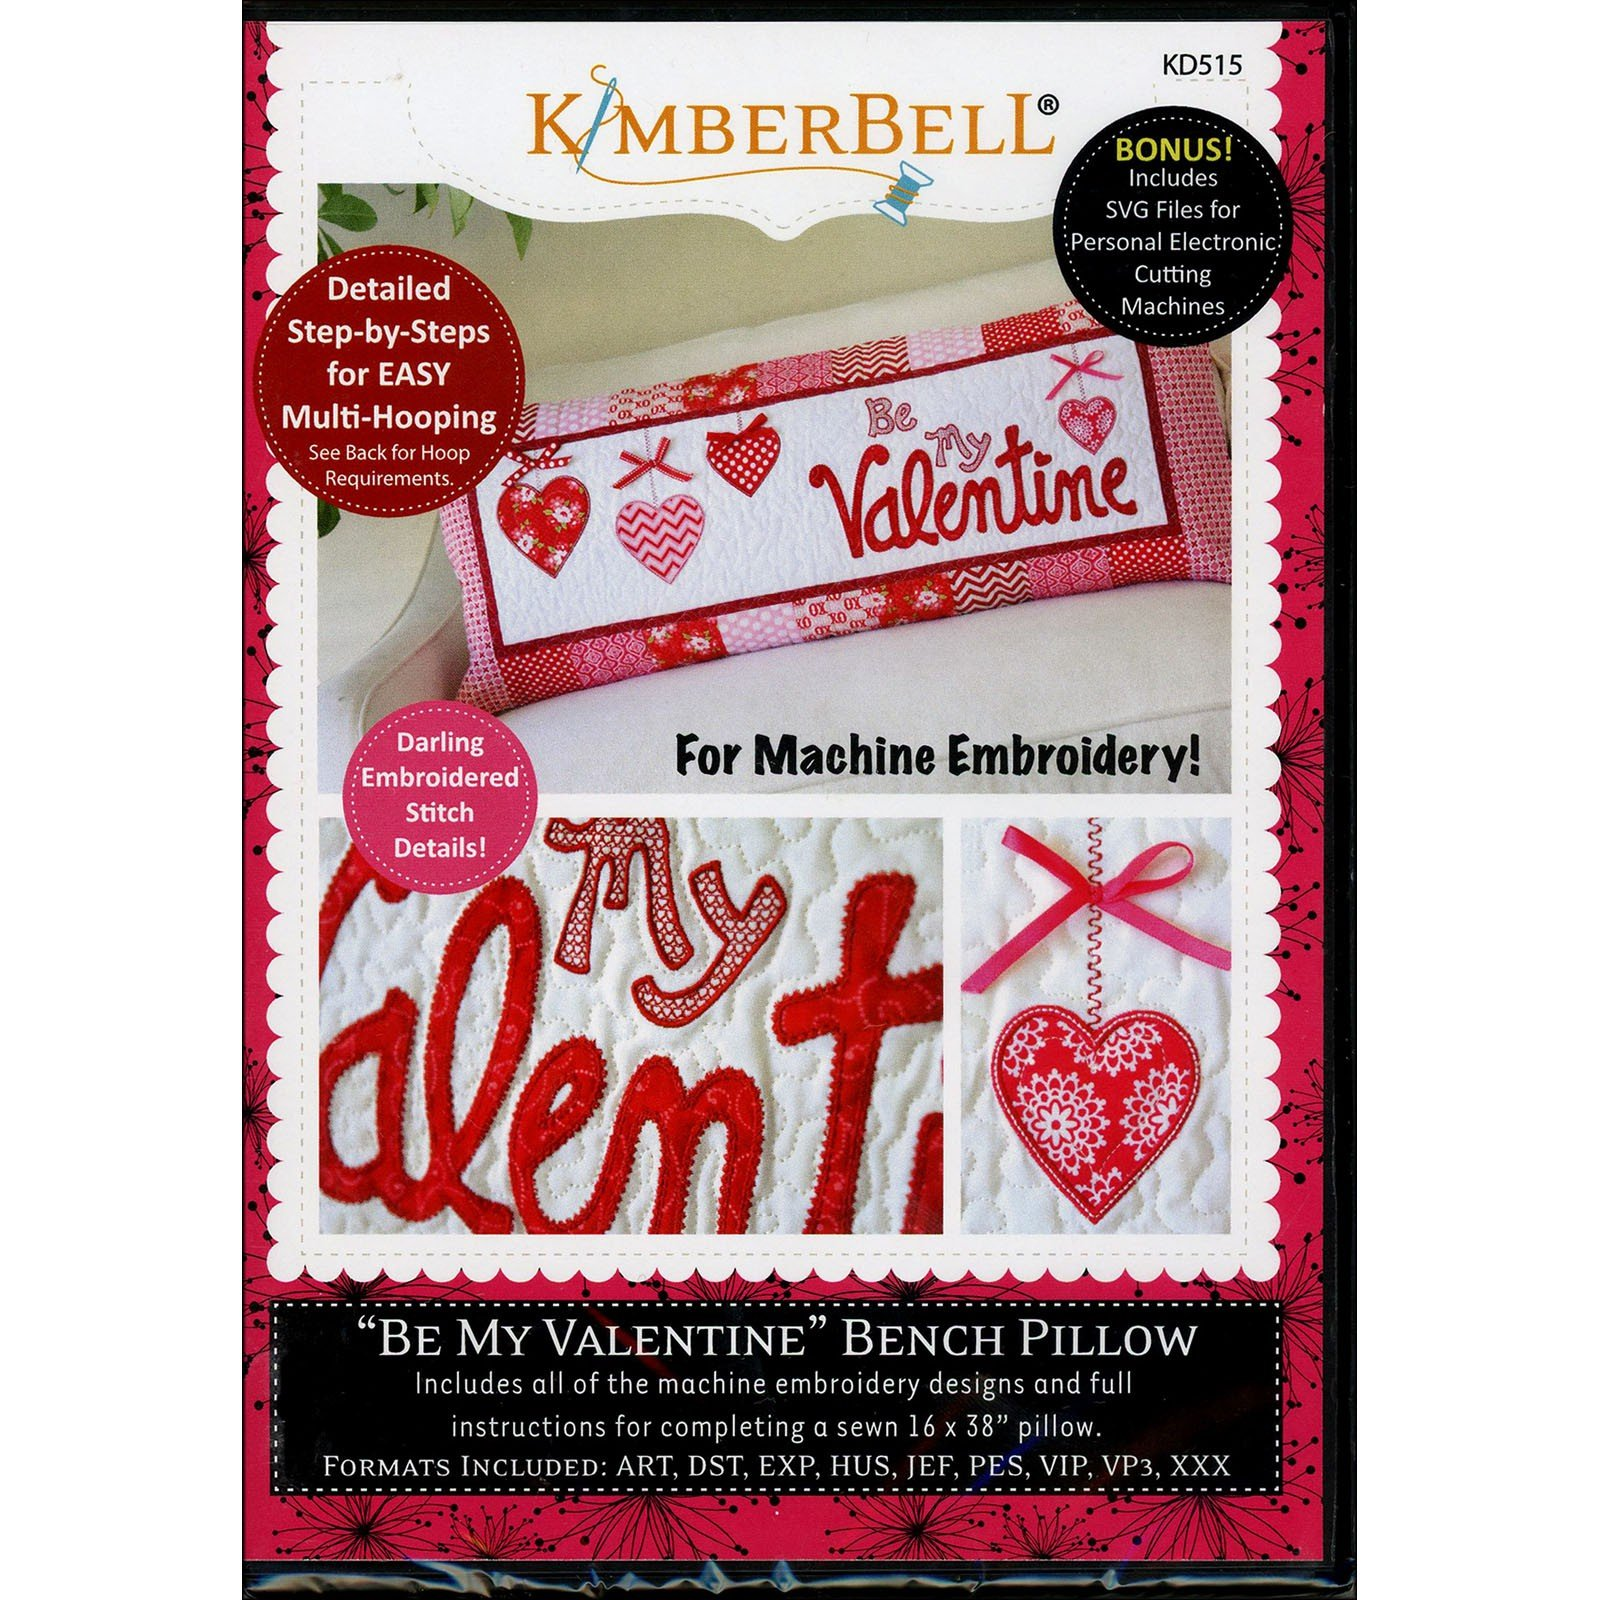 Be My Valentine Bench Pillow Kimberbell Embroidery CD